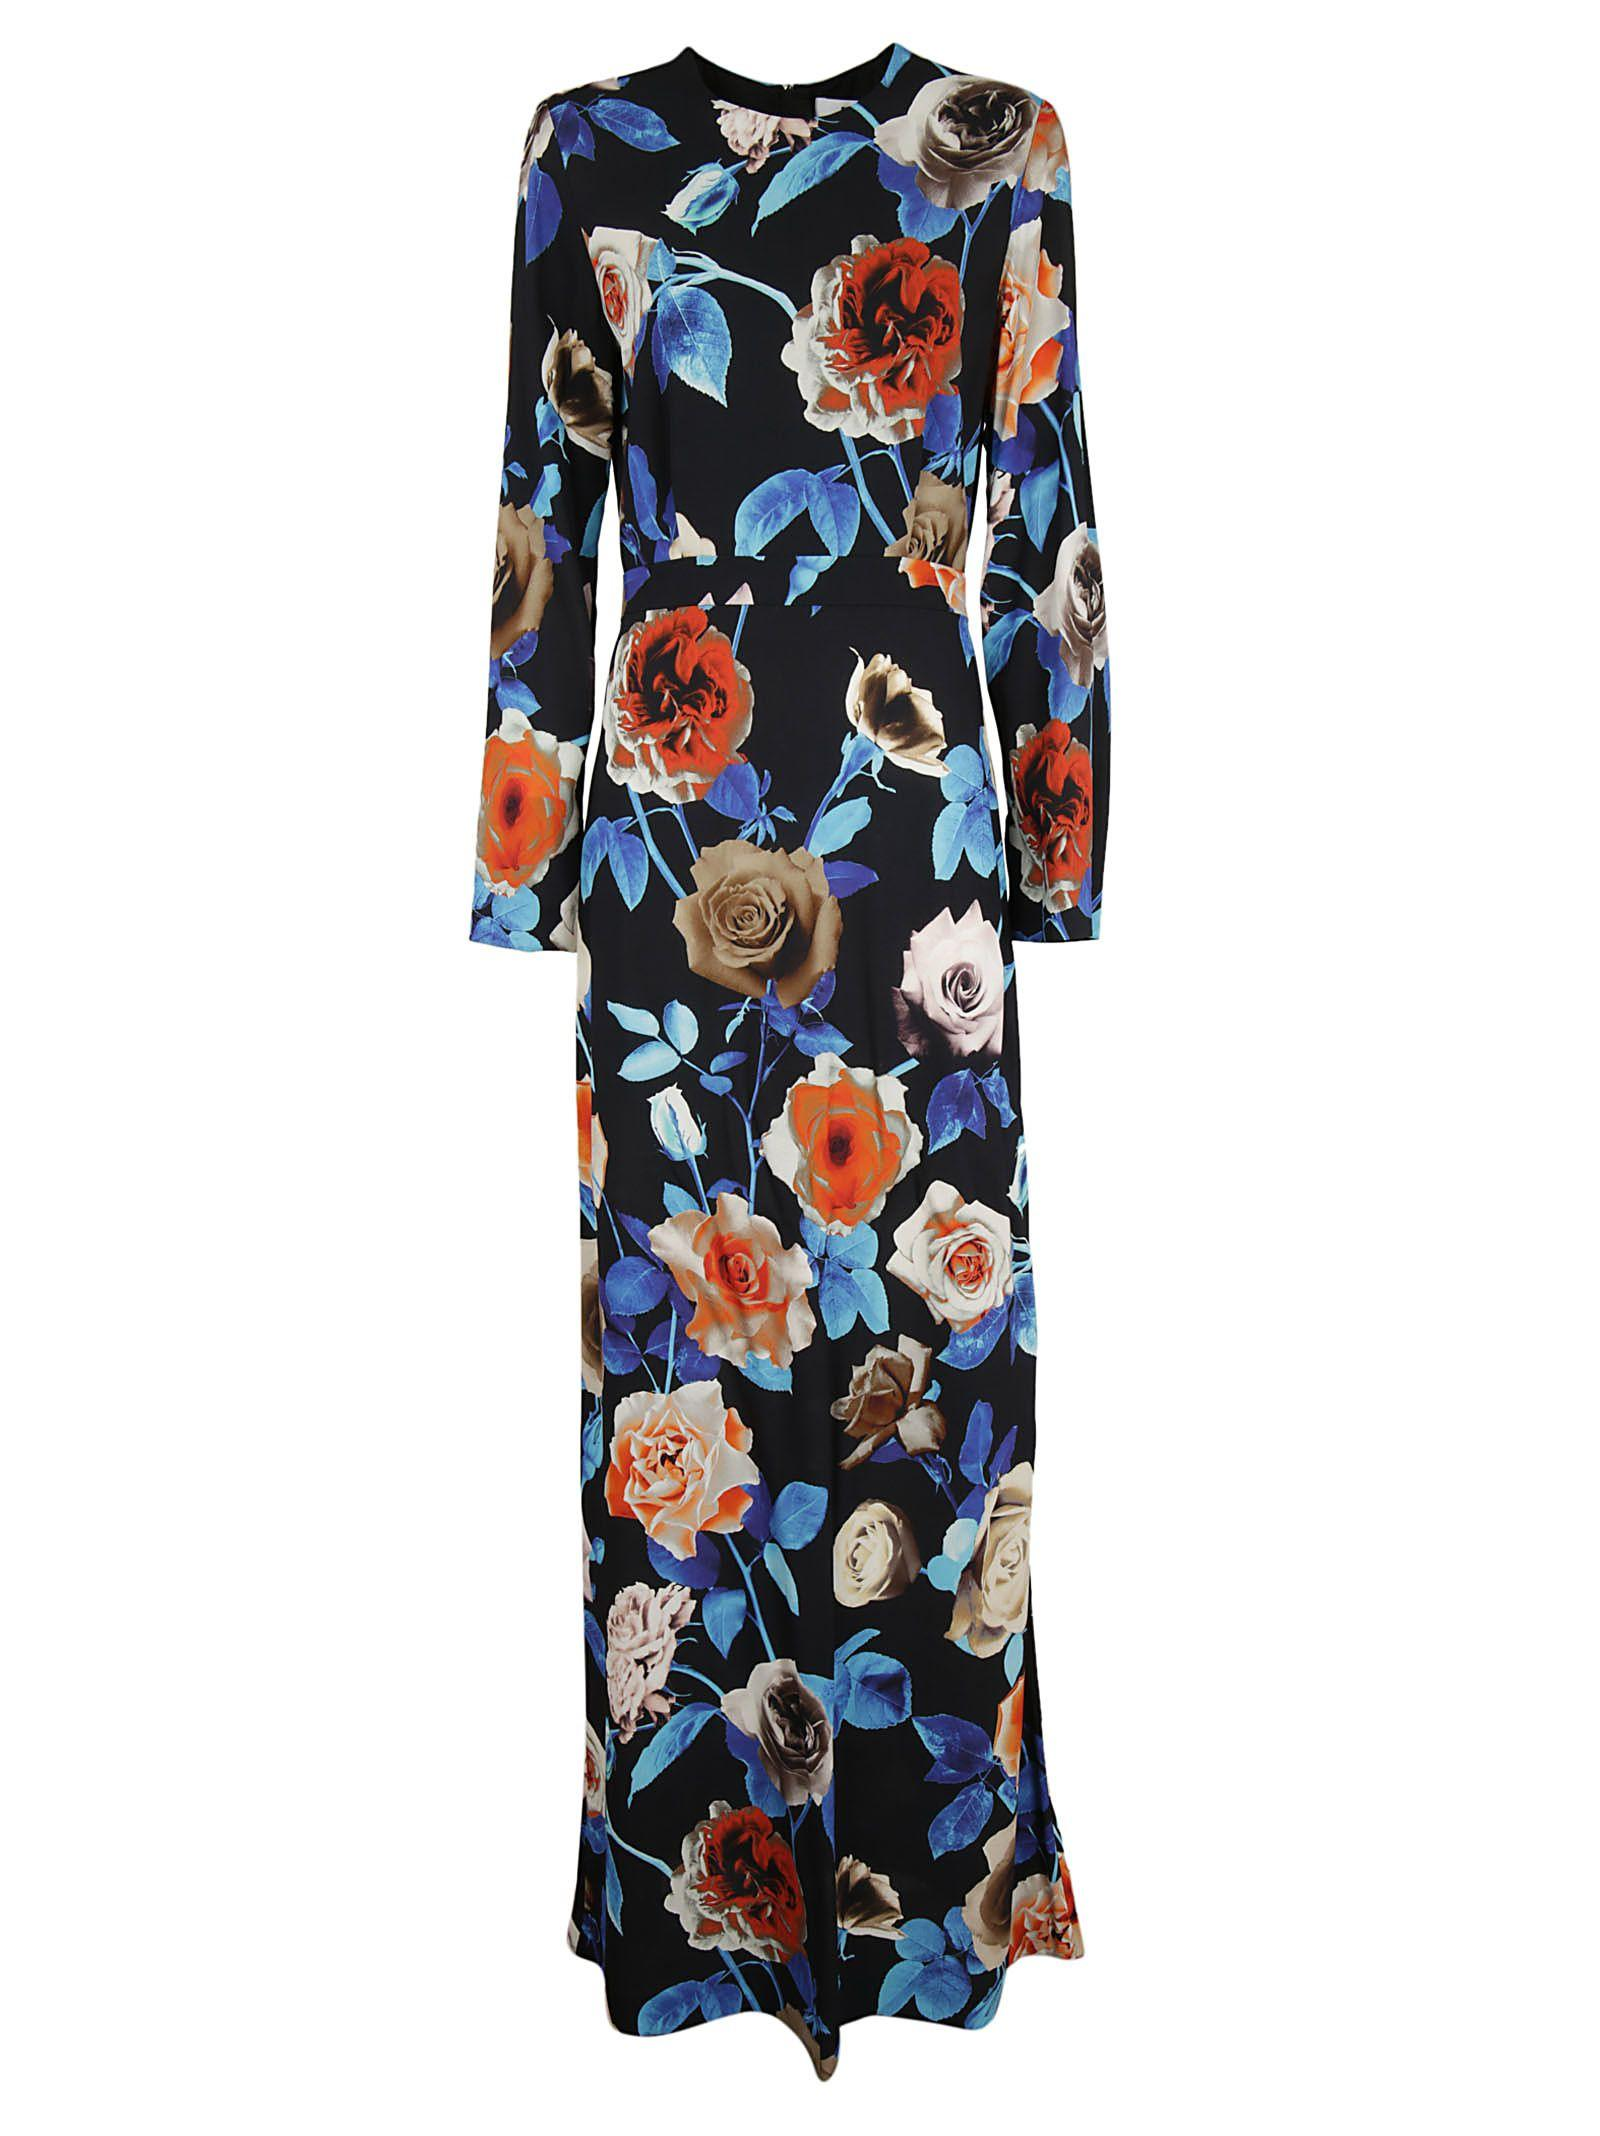 Msgm Floral Print Dress In Black